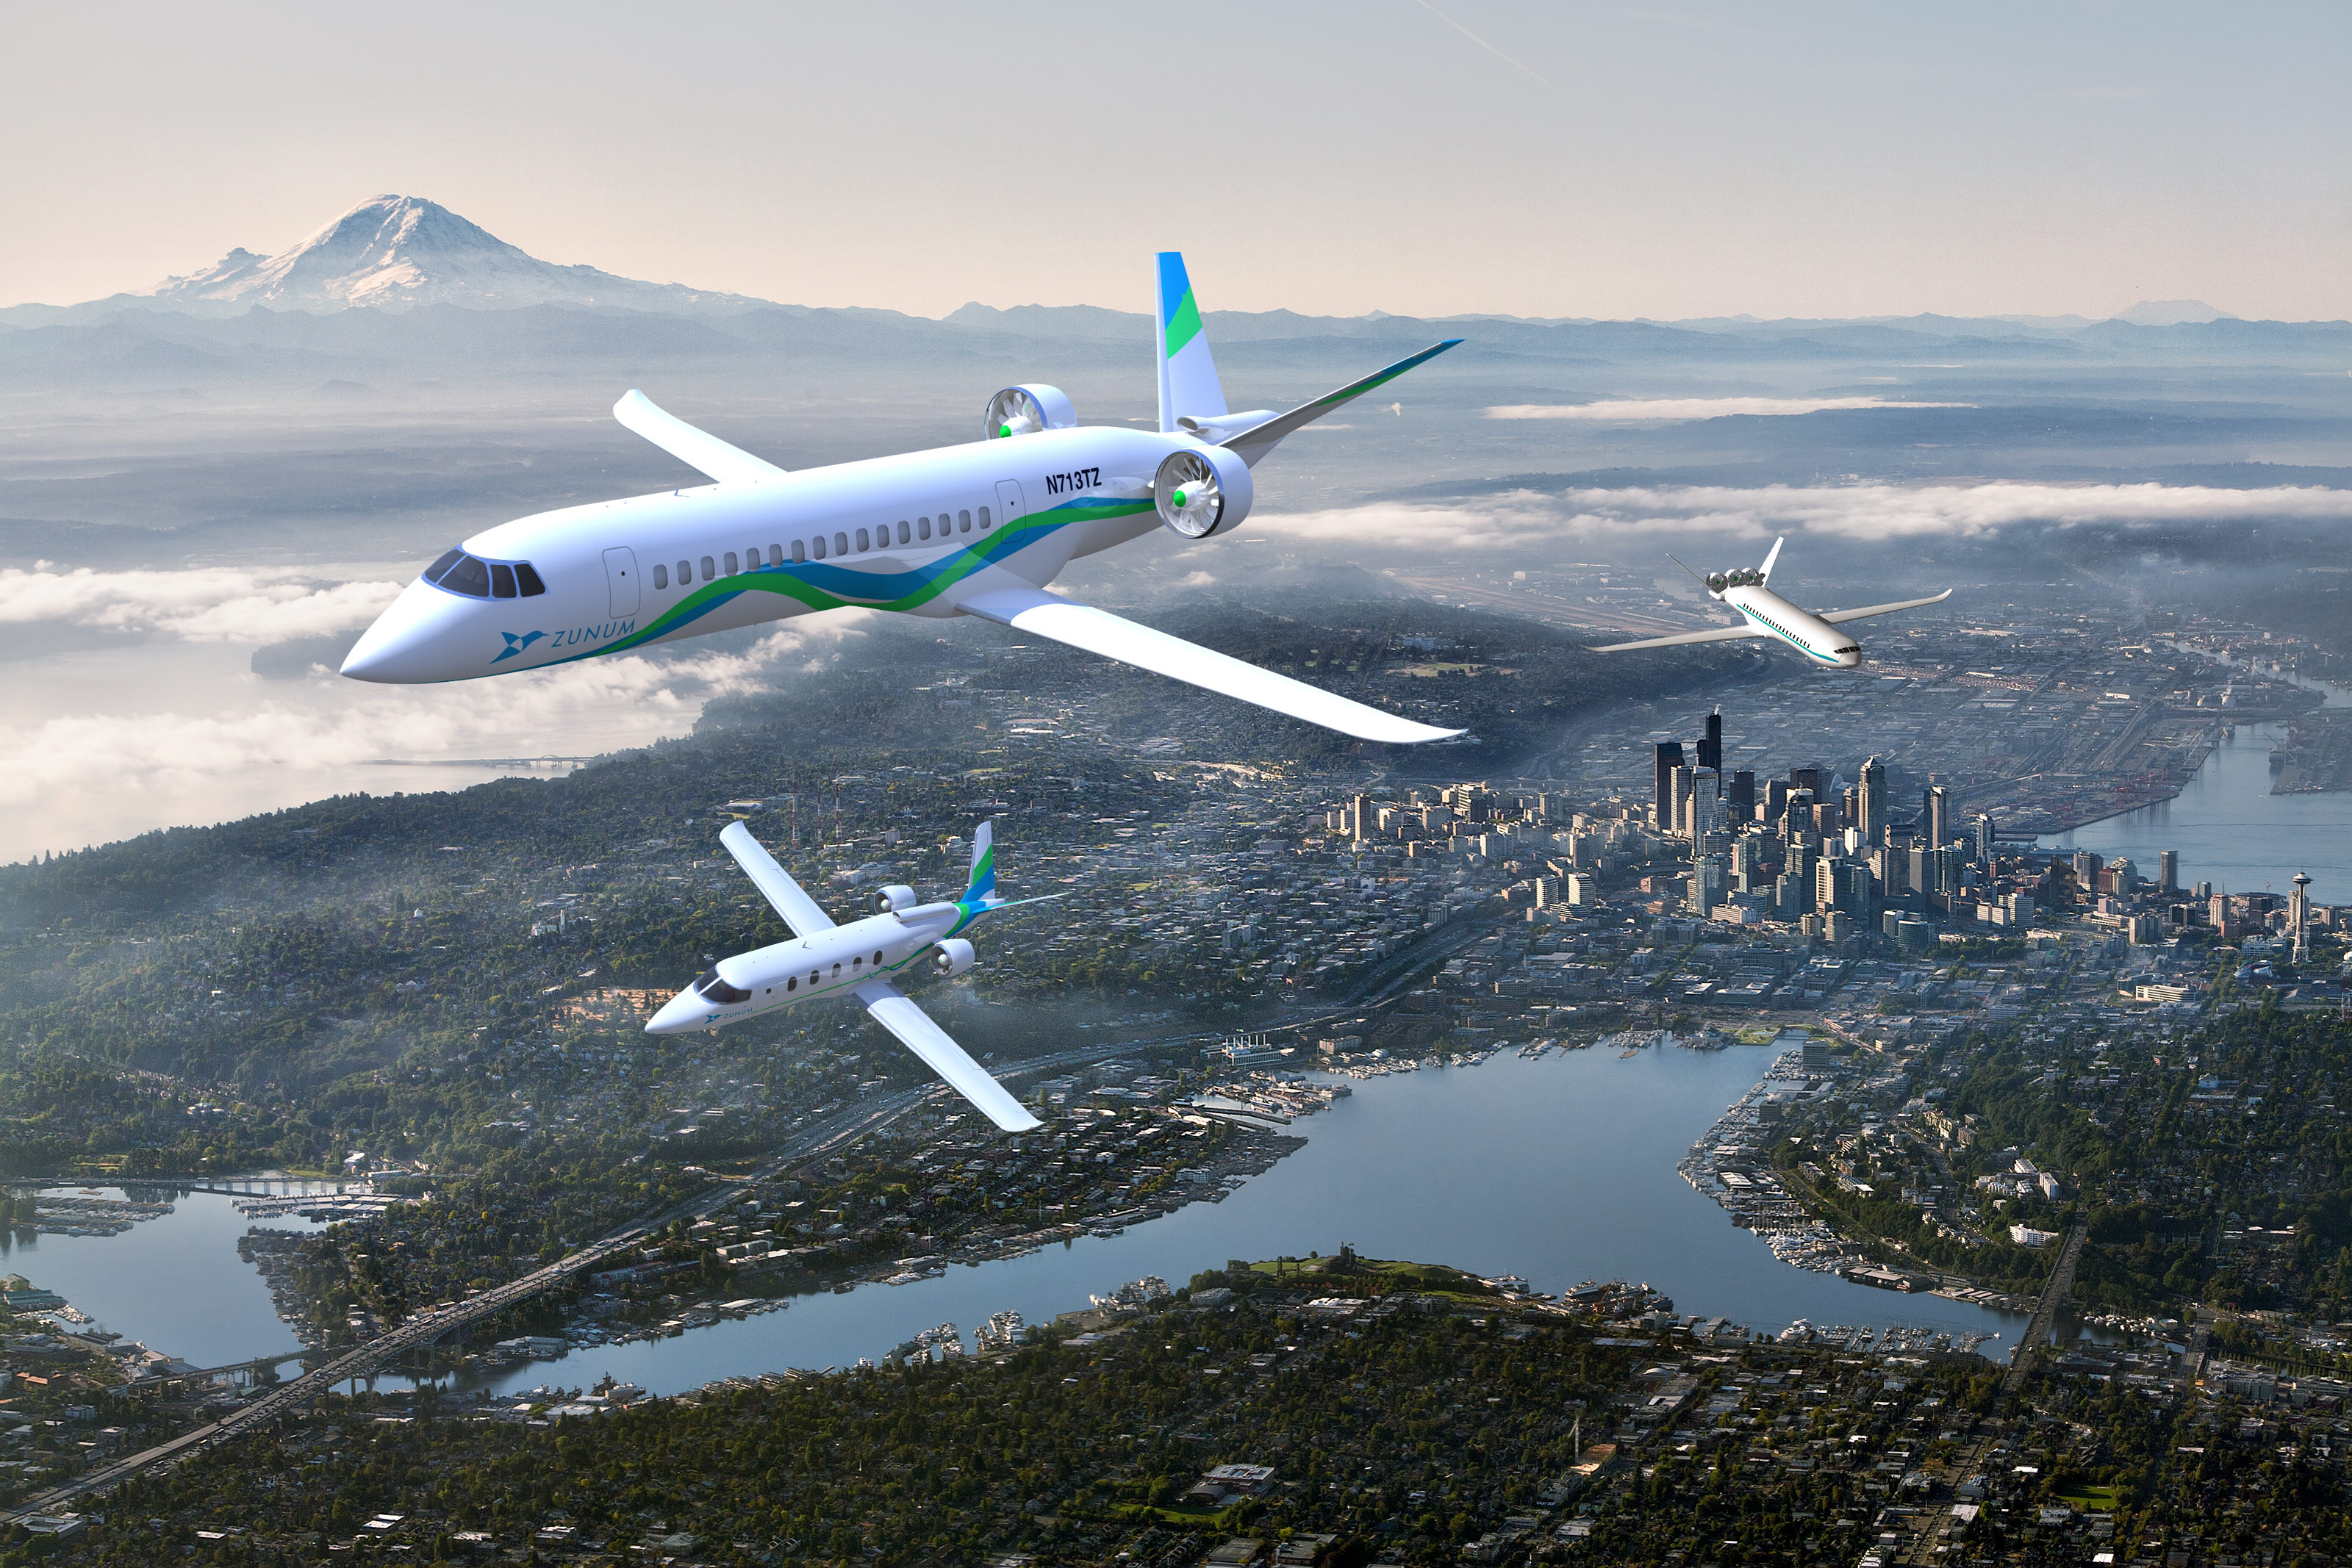 These hybrid electric jets could change how we live and work by